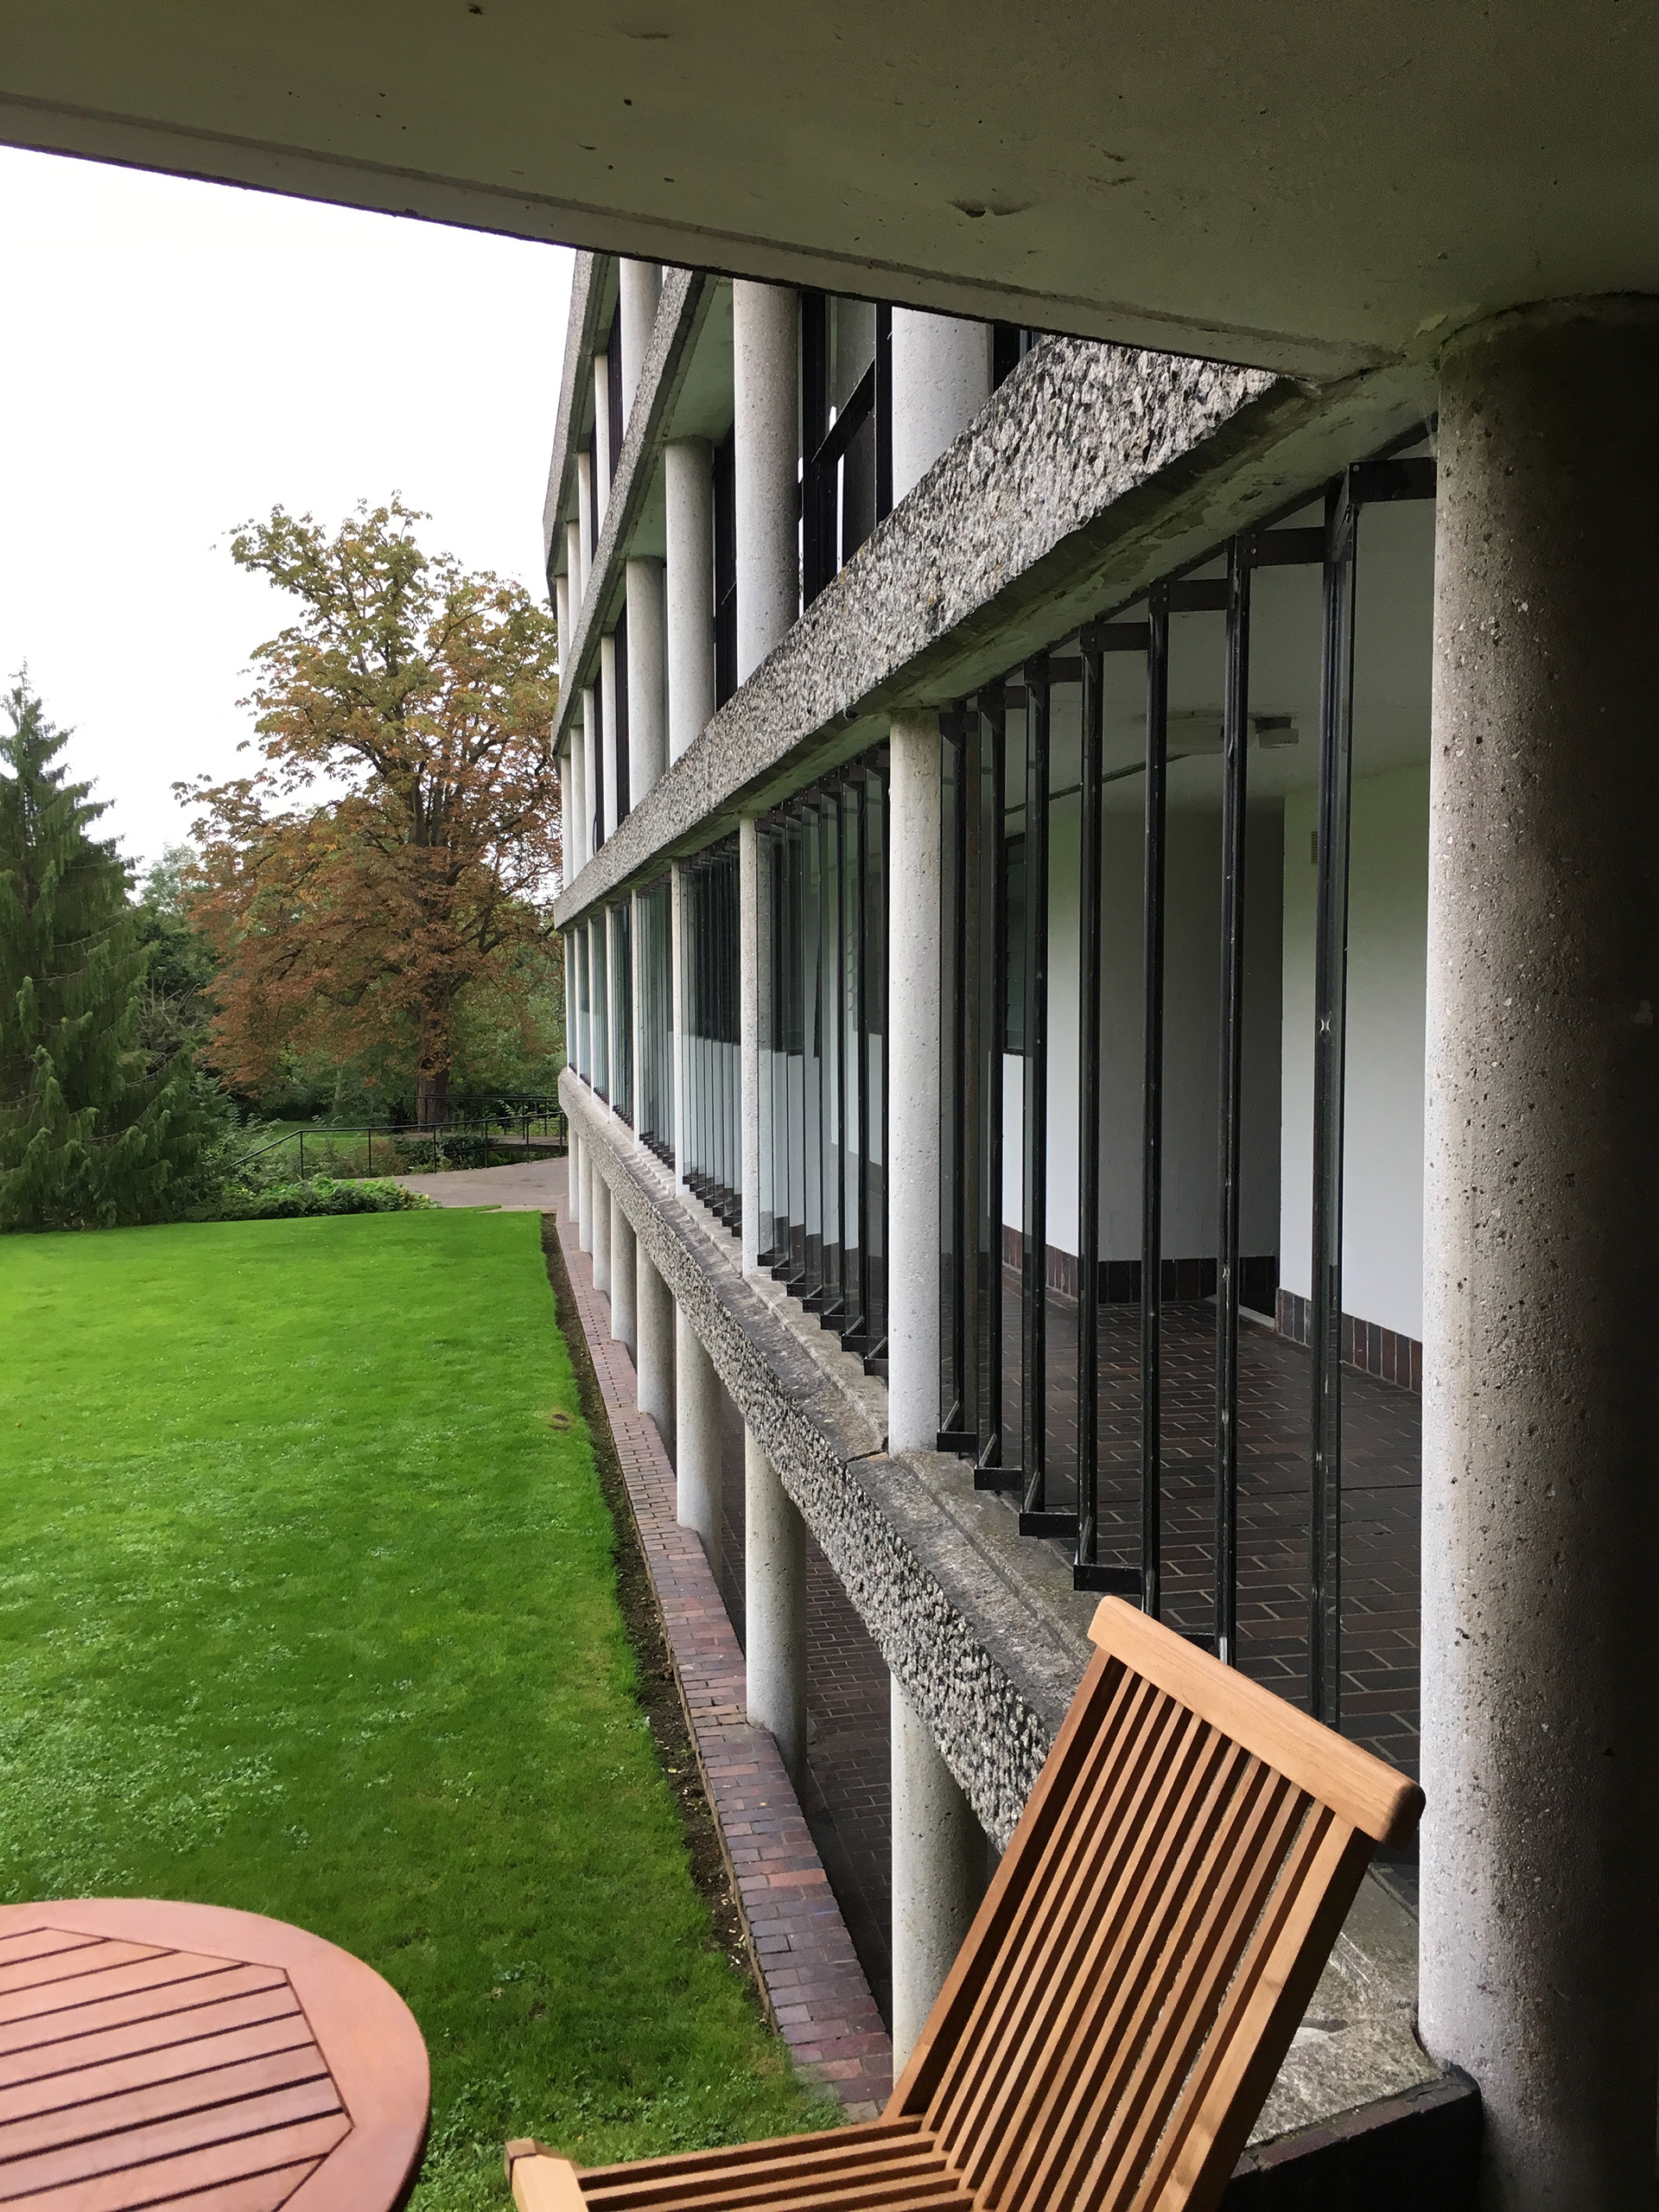 The lower level of the building is partially sunk below the garden level, setting up an interesting eye level view for the rooms | Modernity in/as Heritage – The architecture of Wolfson College, Oxford | Amit Khanna | STIR